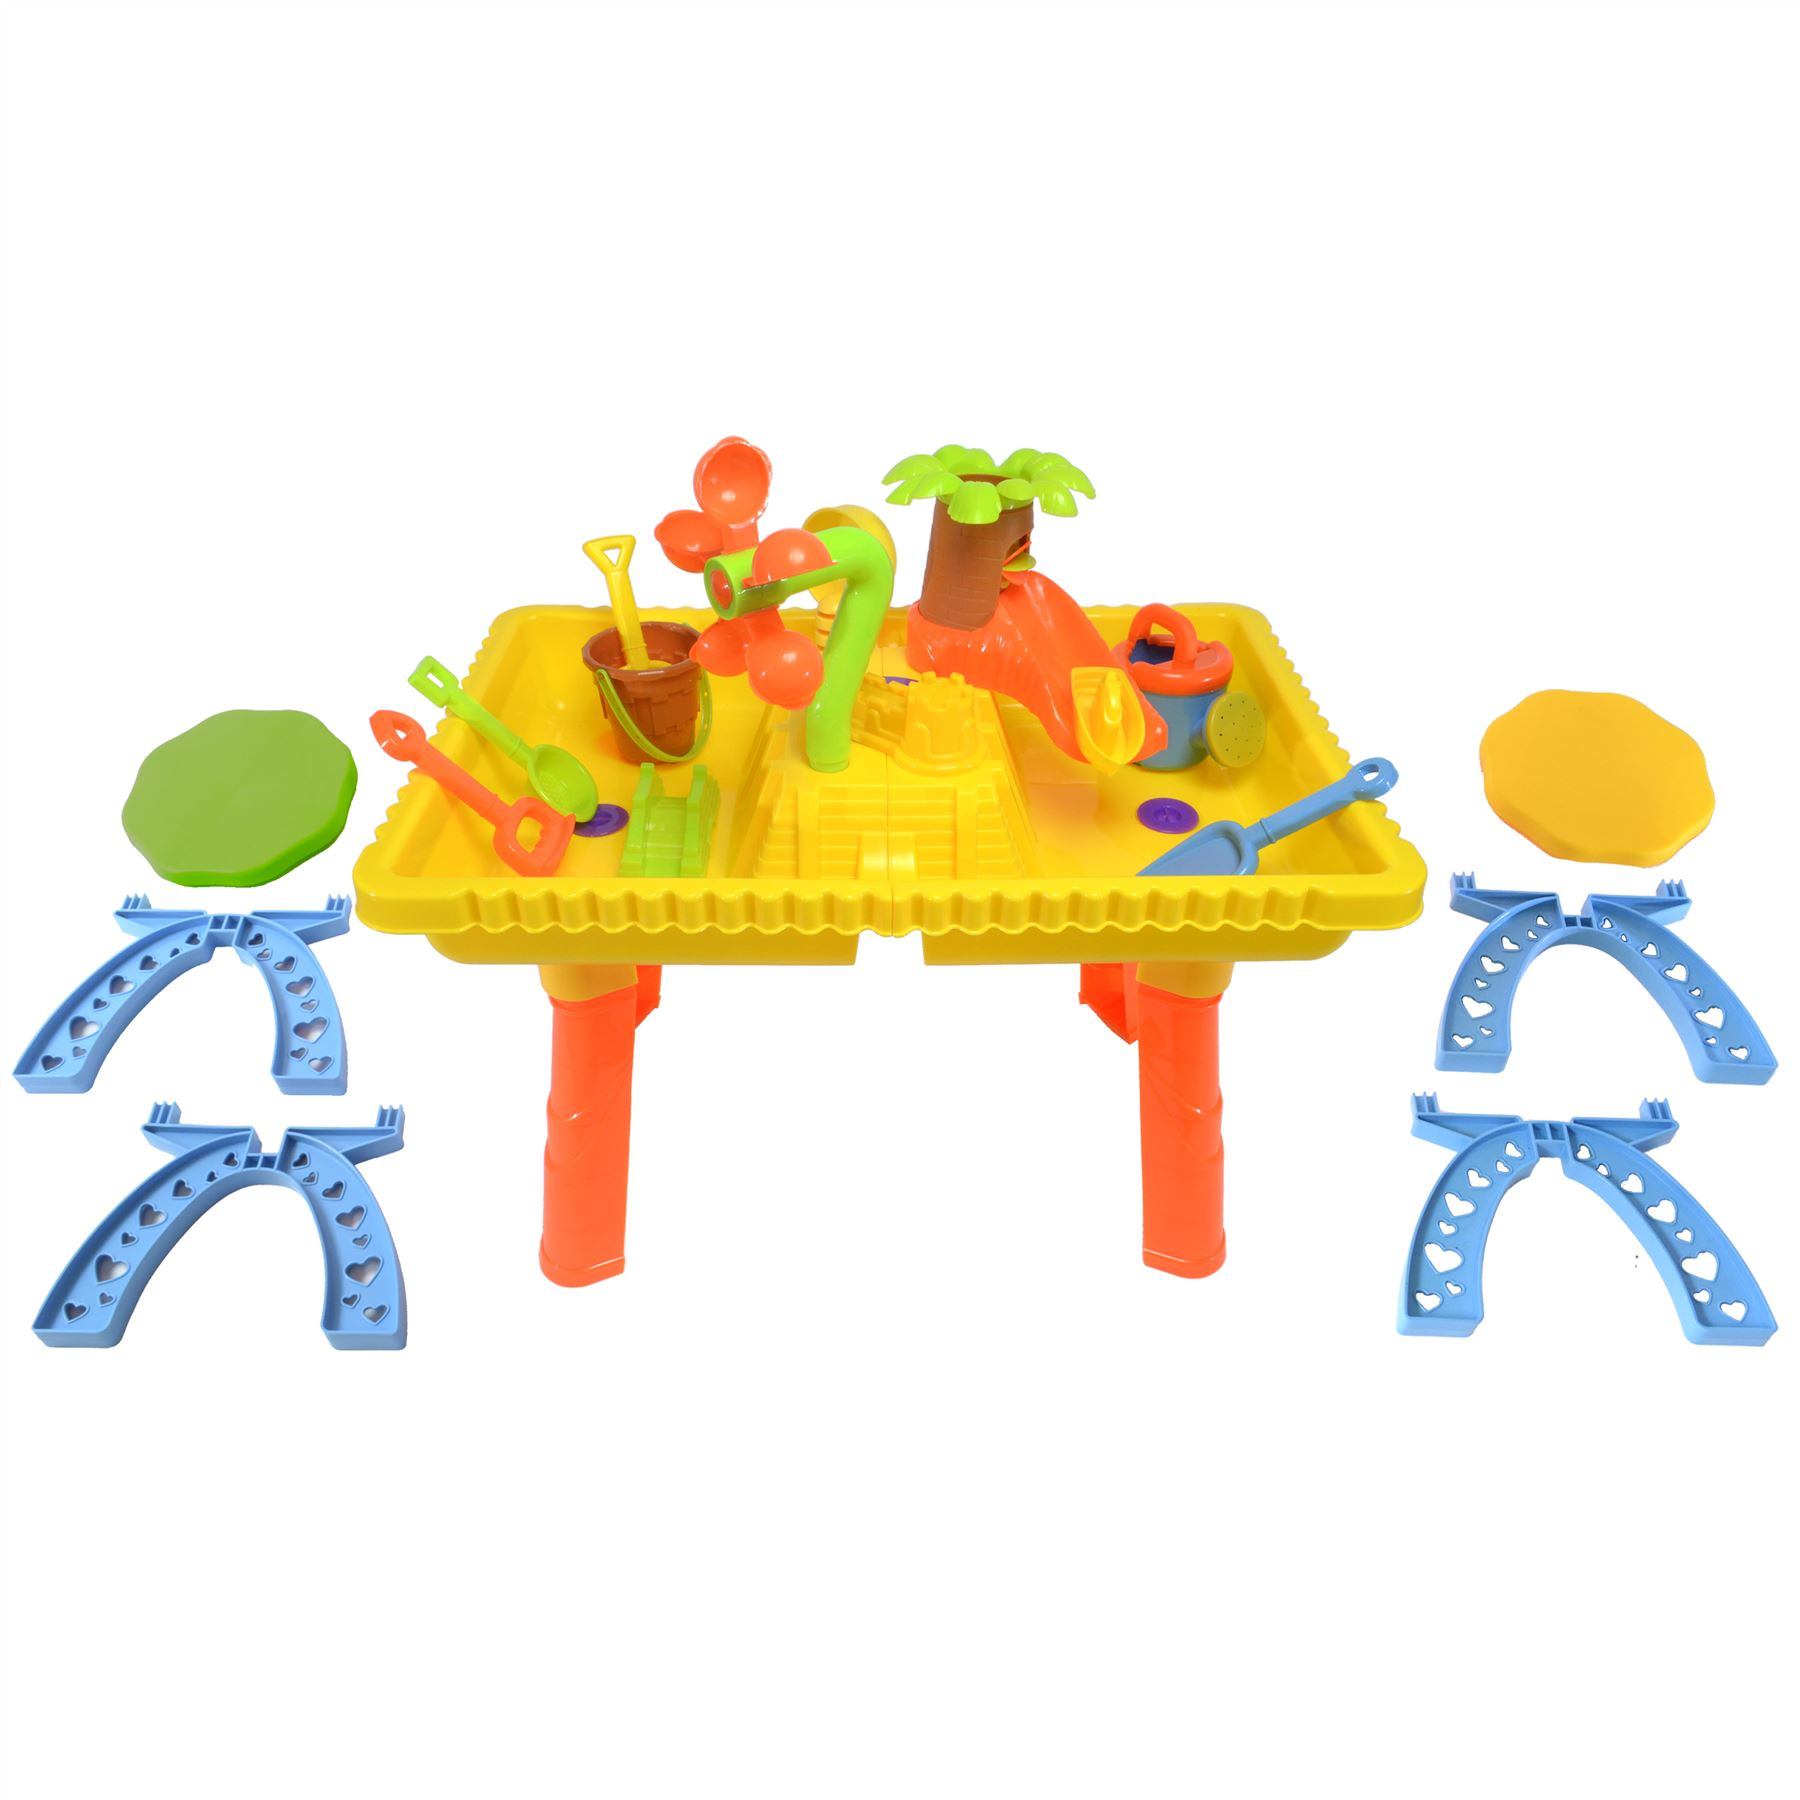 Castle Sand and Water Table set with 2 seats and 10 pieces 9809 7